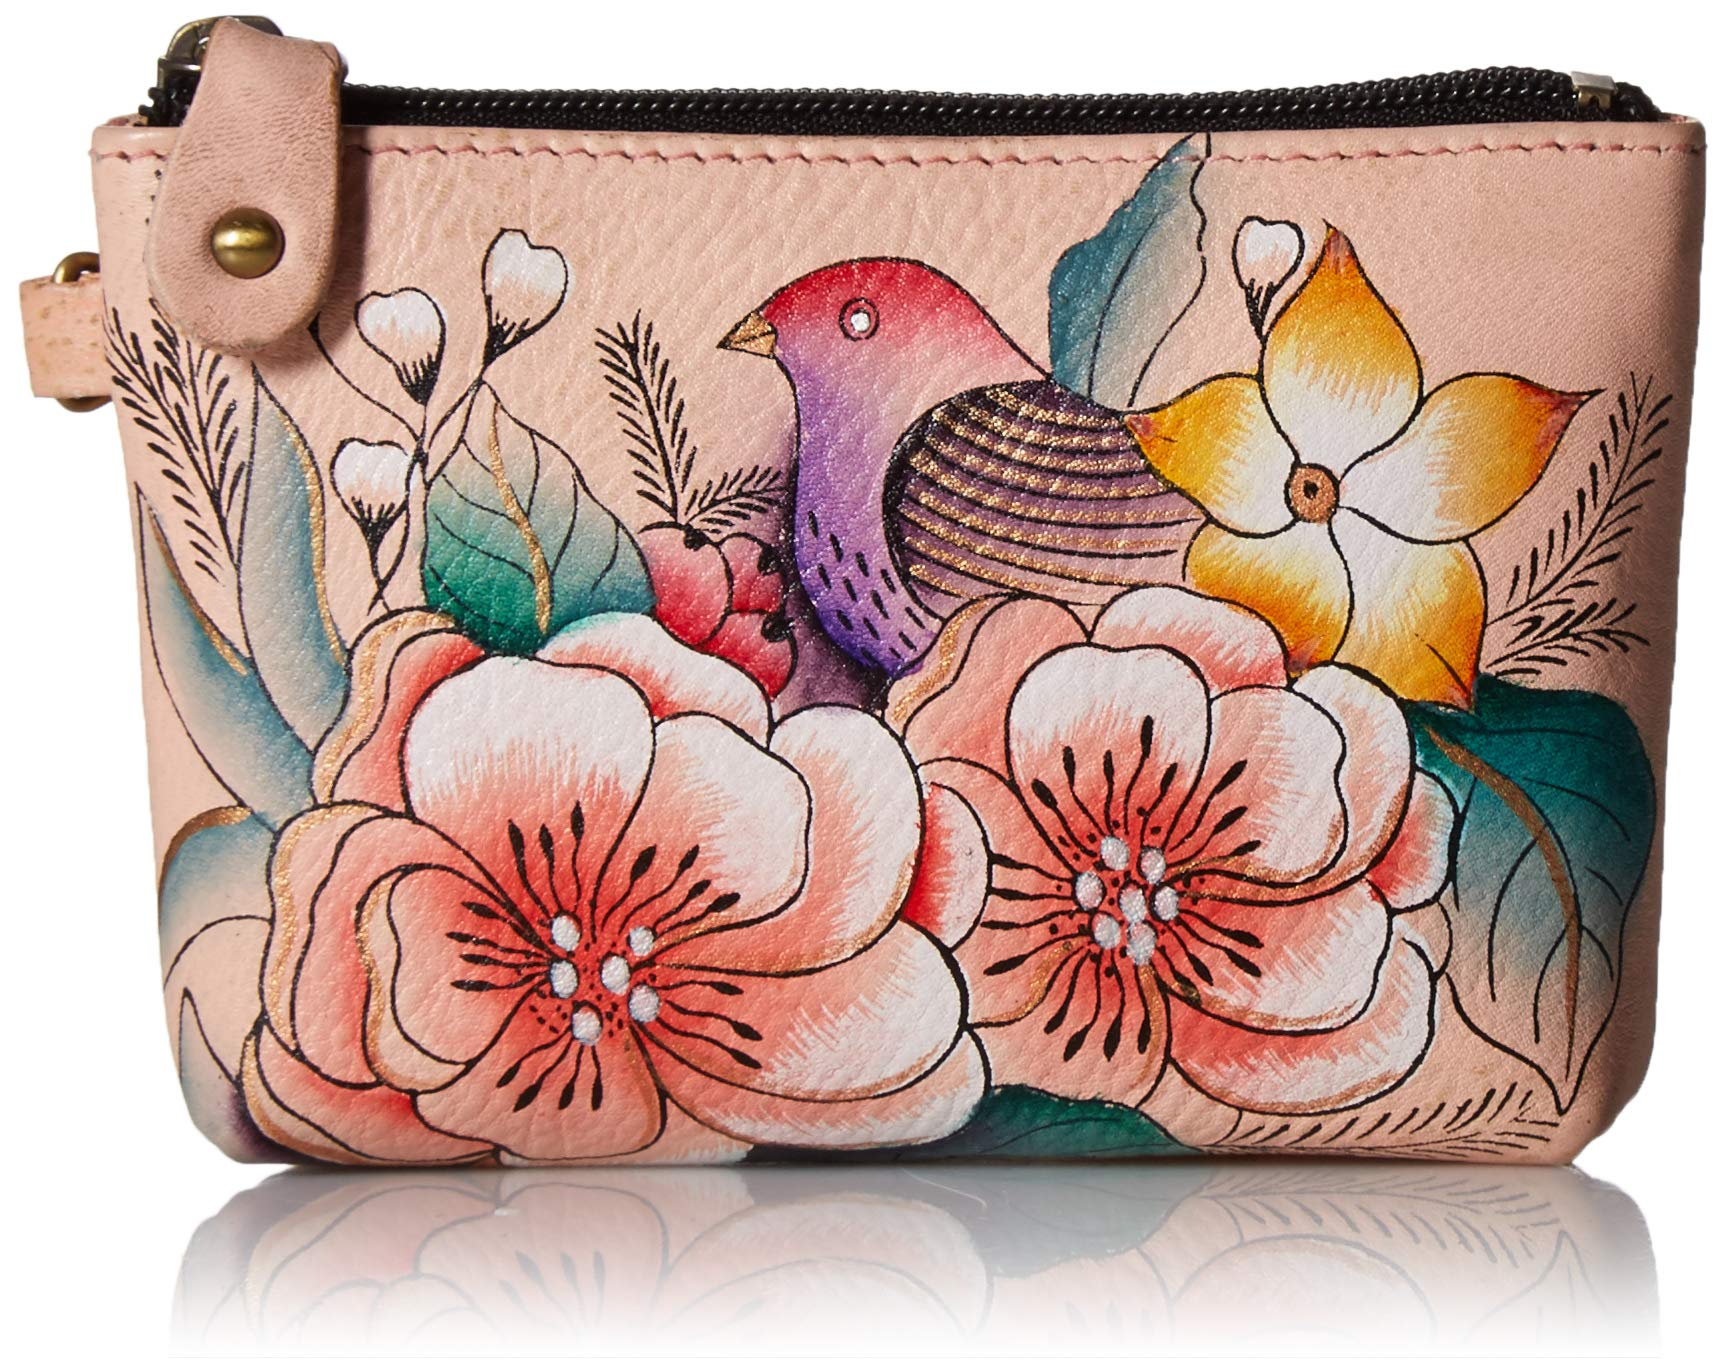 Anna by Anuschka Hand Painted Leather Women's Coin Pouch, Vintage Garden